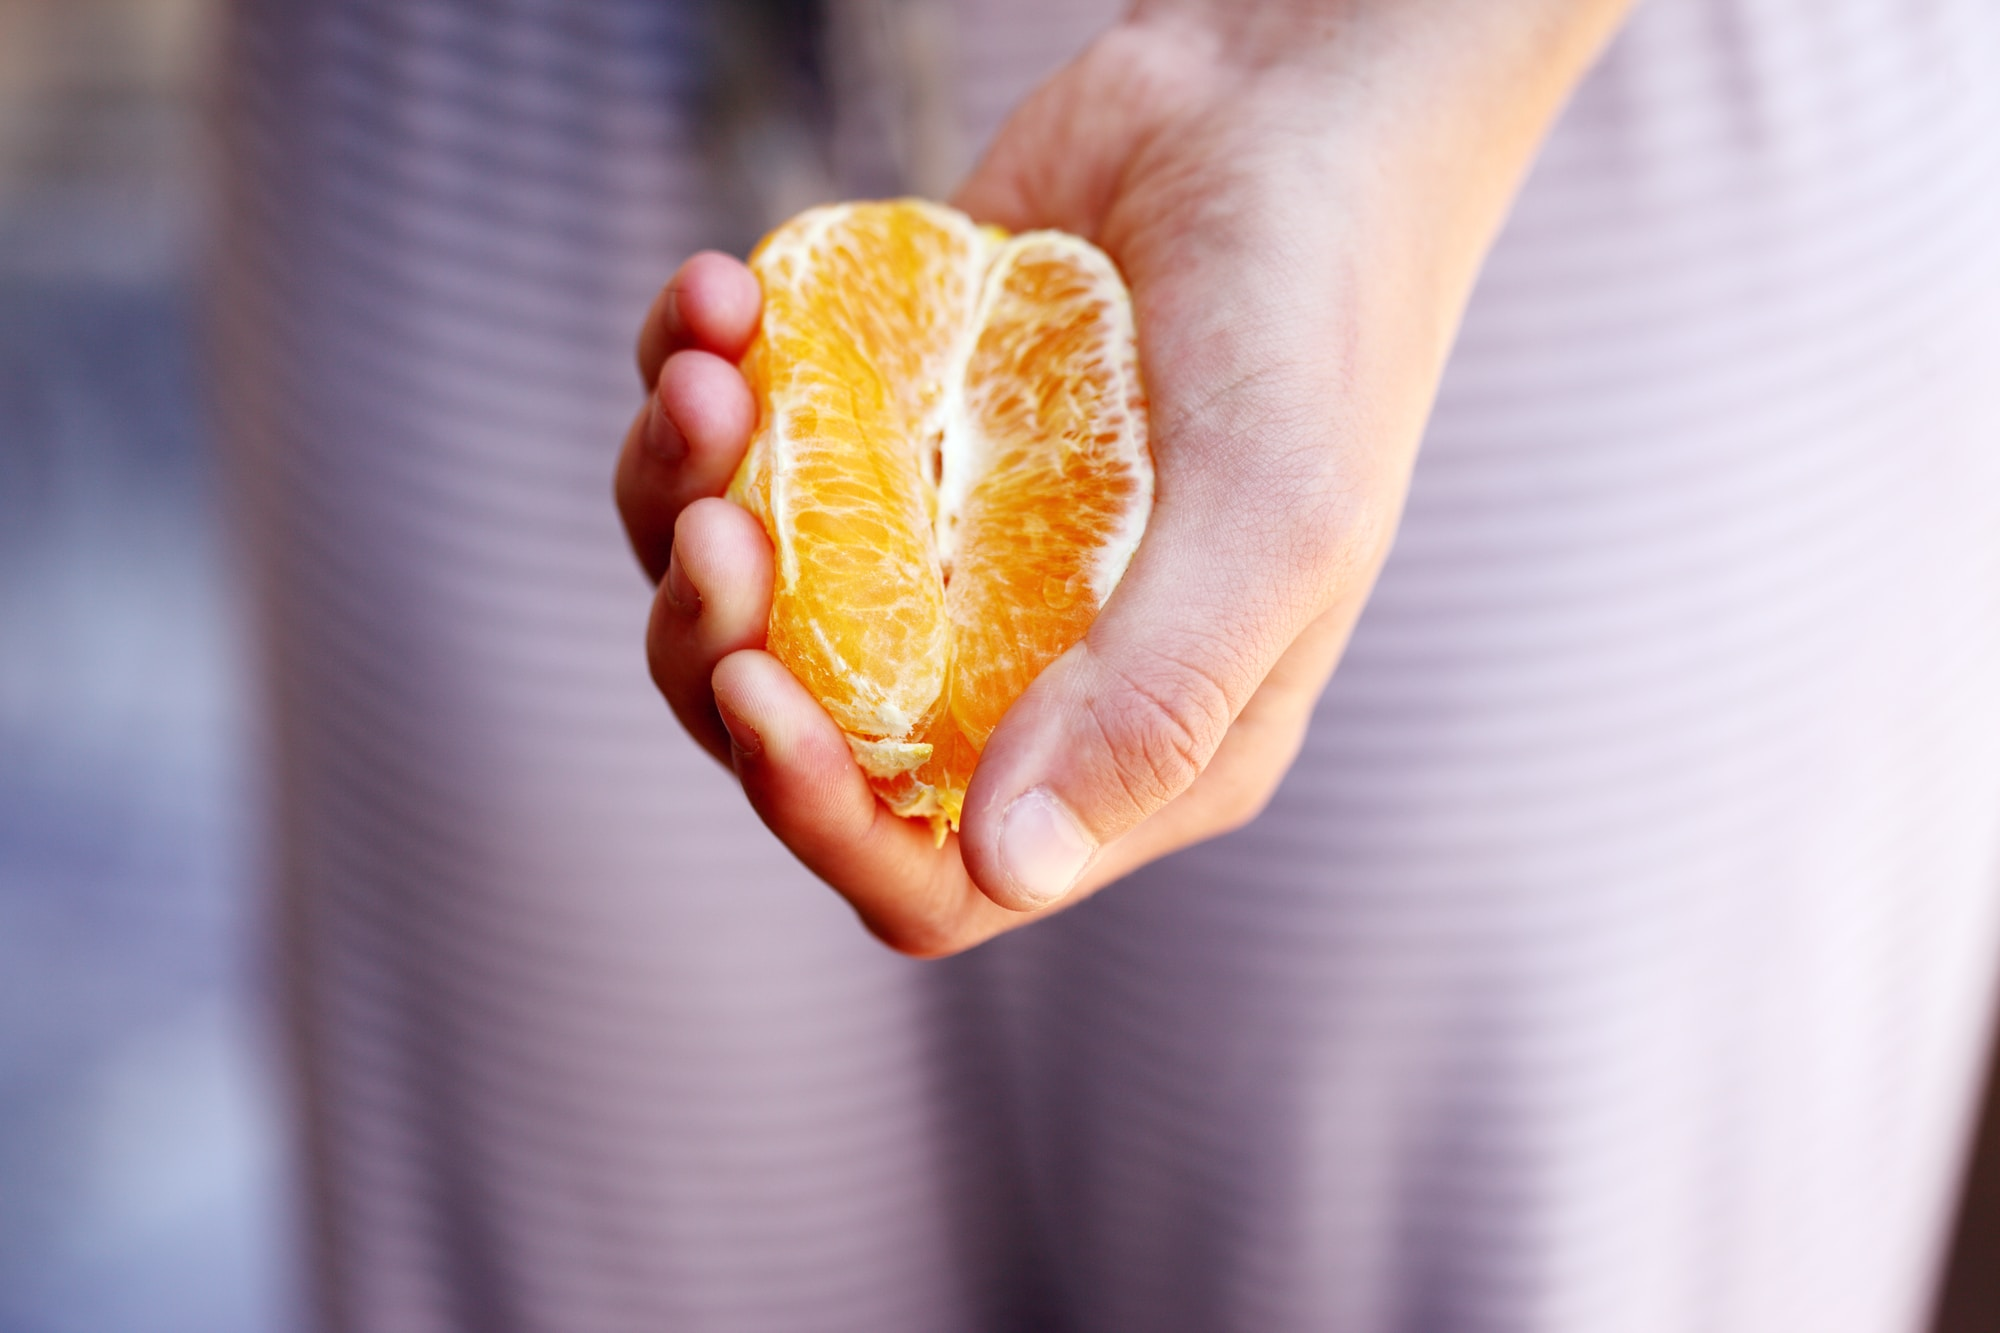 Woman squeezing a fresh, juicy orange. Unporn image collection.